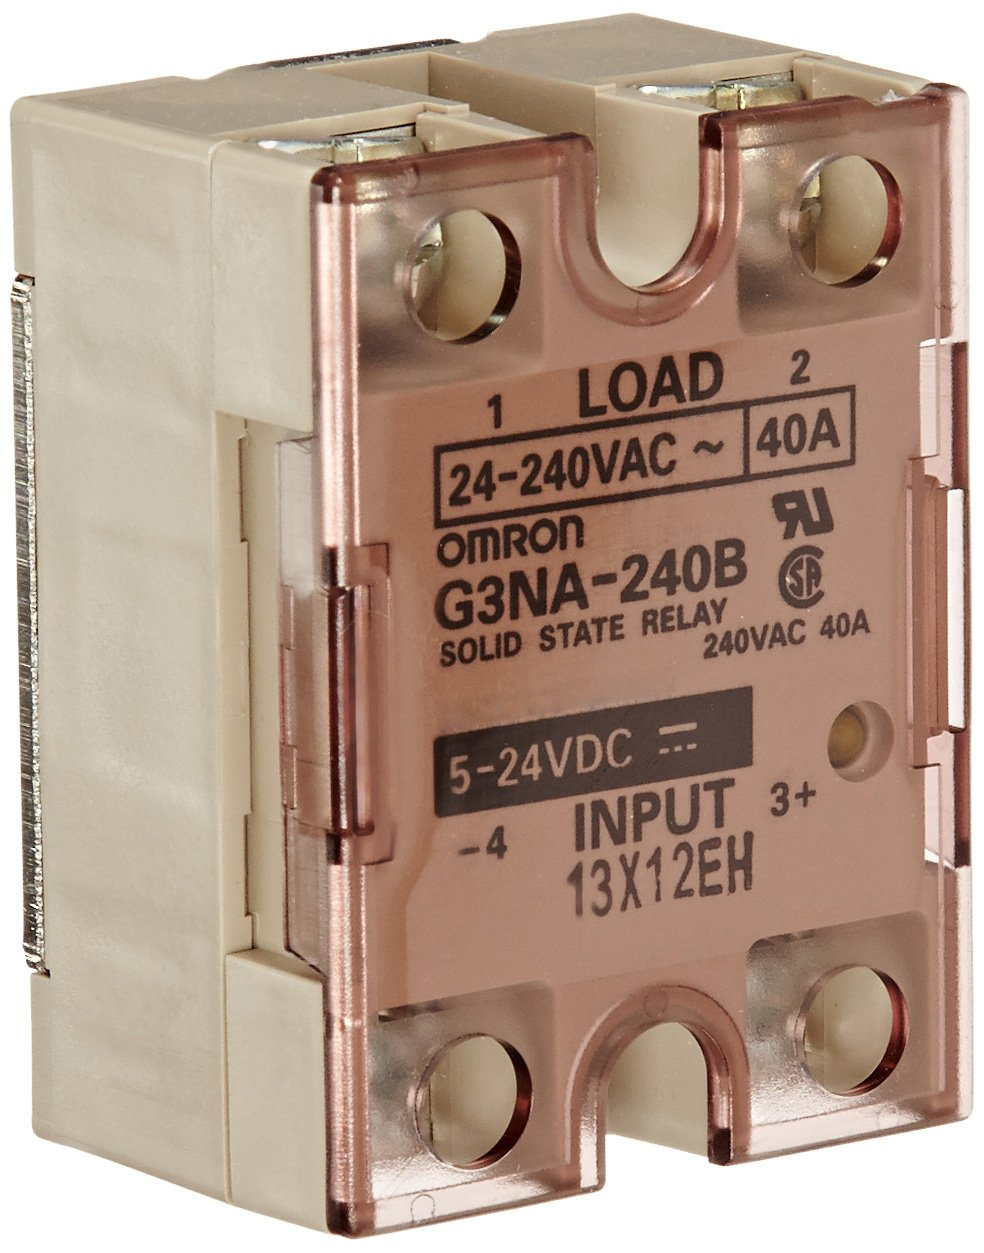 Zero Cross Function 5 to 24 VDC Input Voltage Indicator Omron G3PA-240B-VD DC5-24 Solid State Relay 40 A Rated Load Current 24 to 240 VAC Rated Load Voltage Phototriac Coupler Isolation